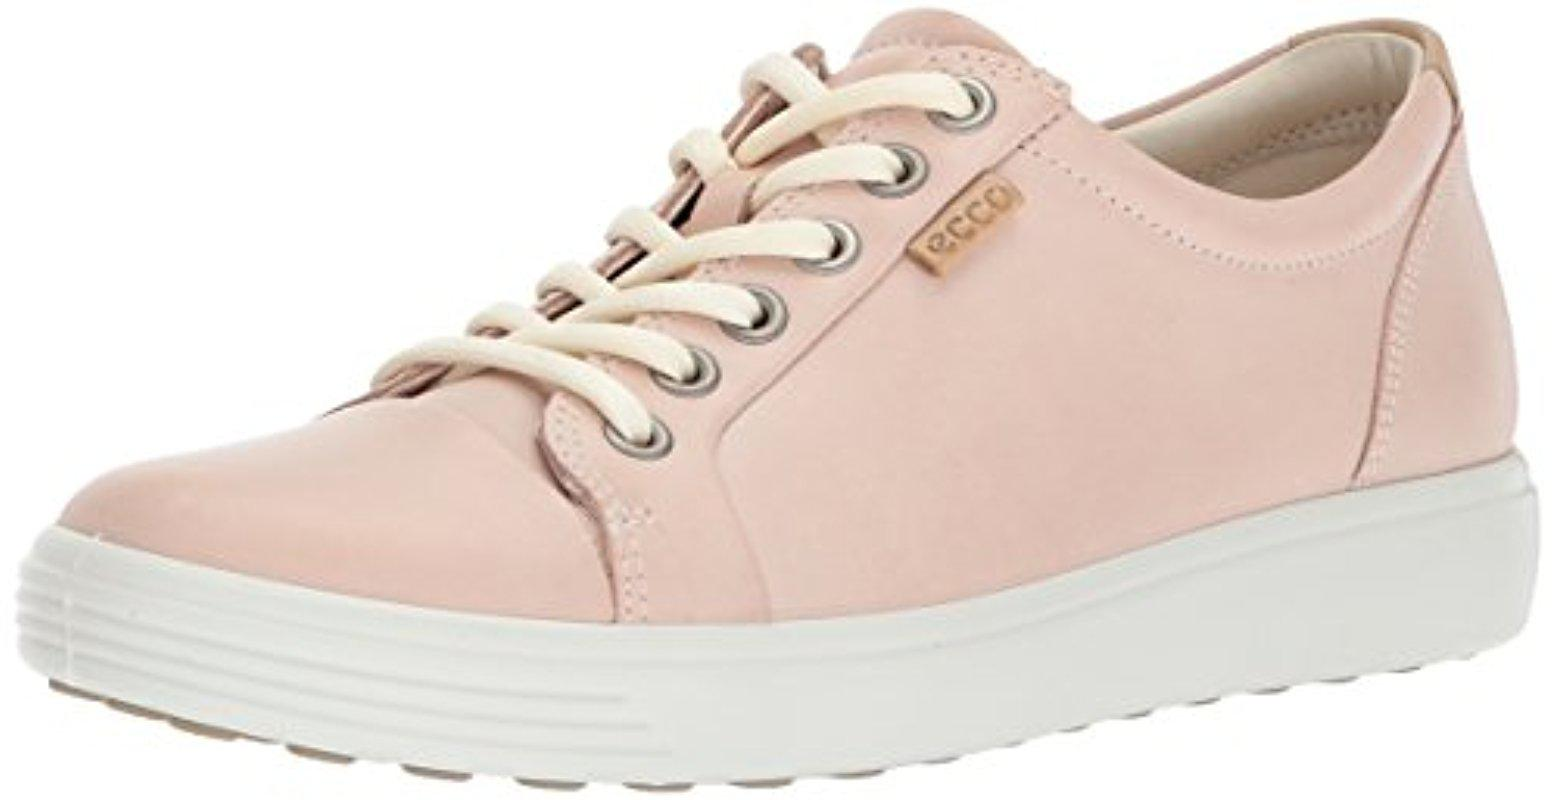 Ecco Leather Soft Vii Sneaker in Pink